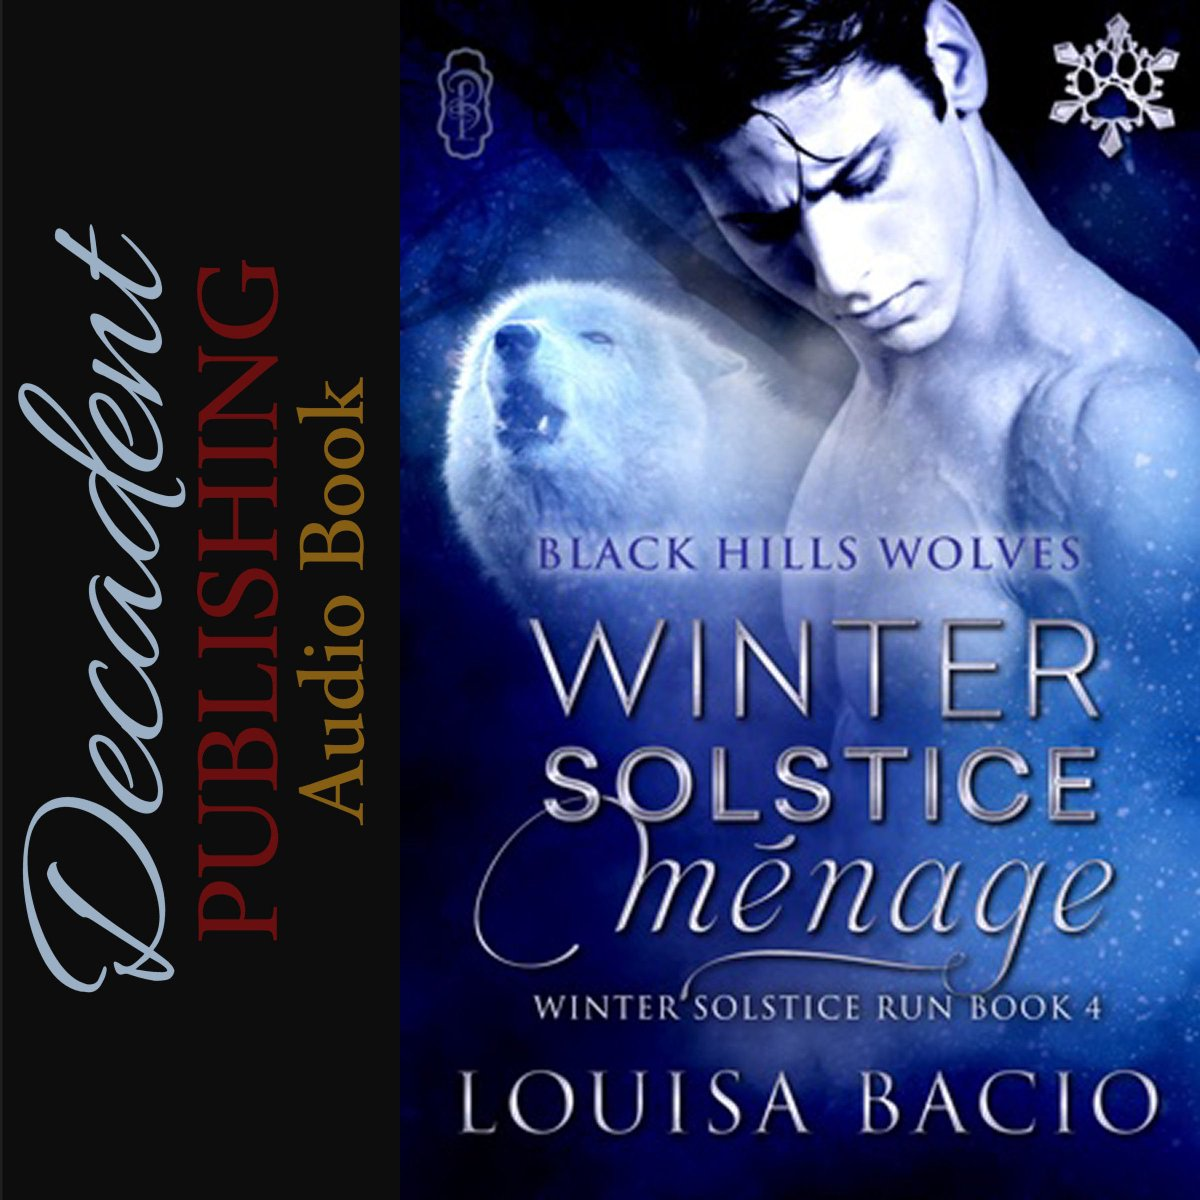 Where Sugar goes, trouble follows https://t.co/Hqg7Rocqdh @Louisabacio @mannvalerie #paranormal #romance #audiobooks https://t.co/7fZ3YLdph4